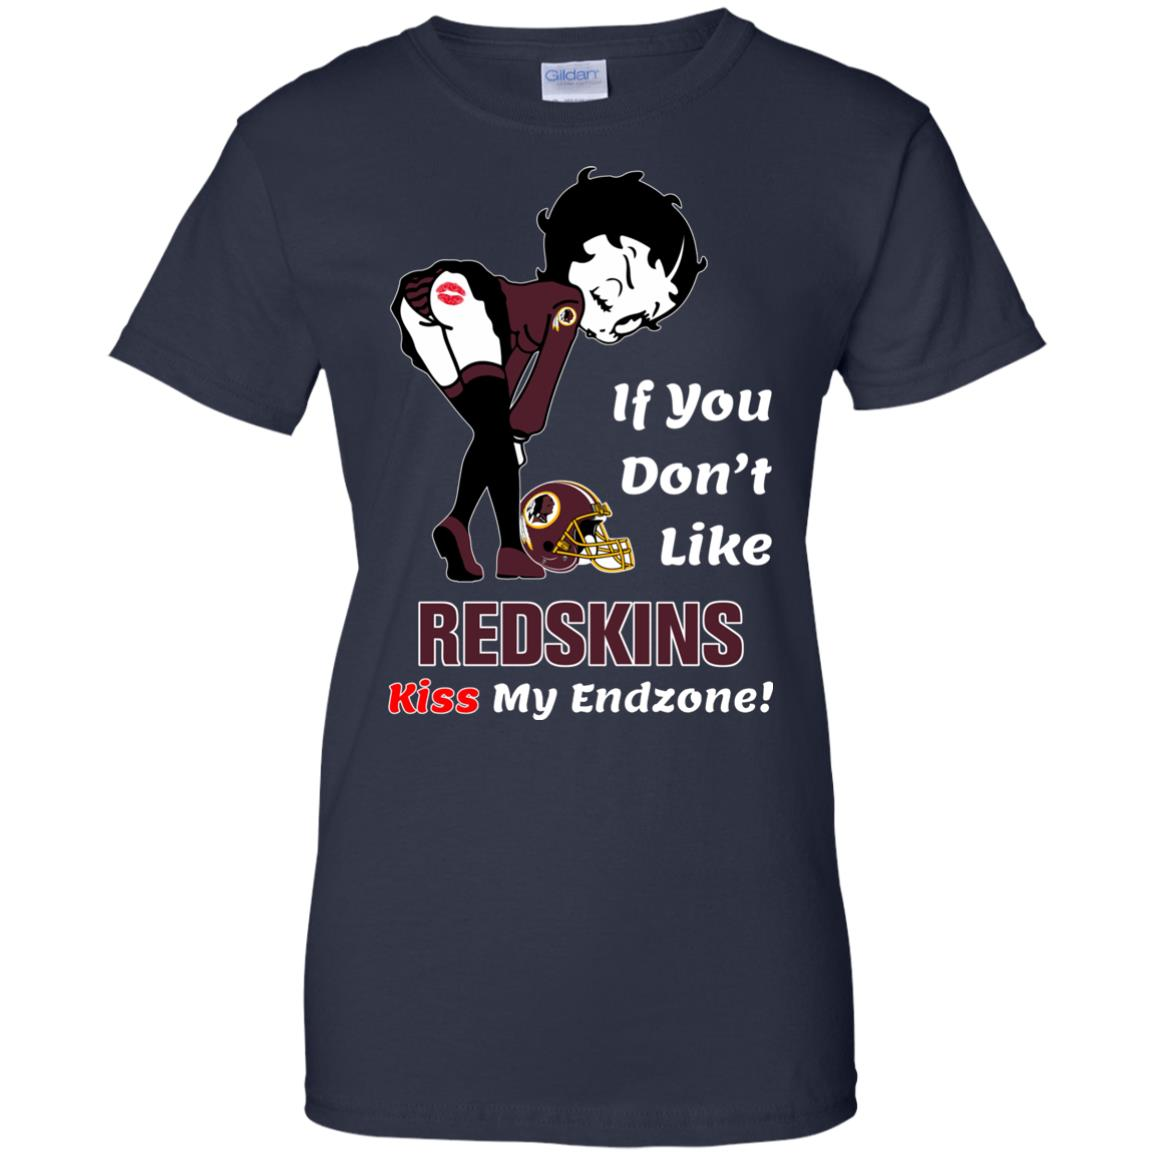 image 468px Betty Boop If you don't like Redskins kiss my endzone t shirt, hoodies, tank